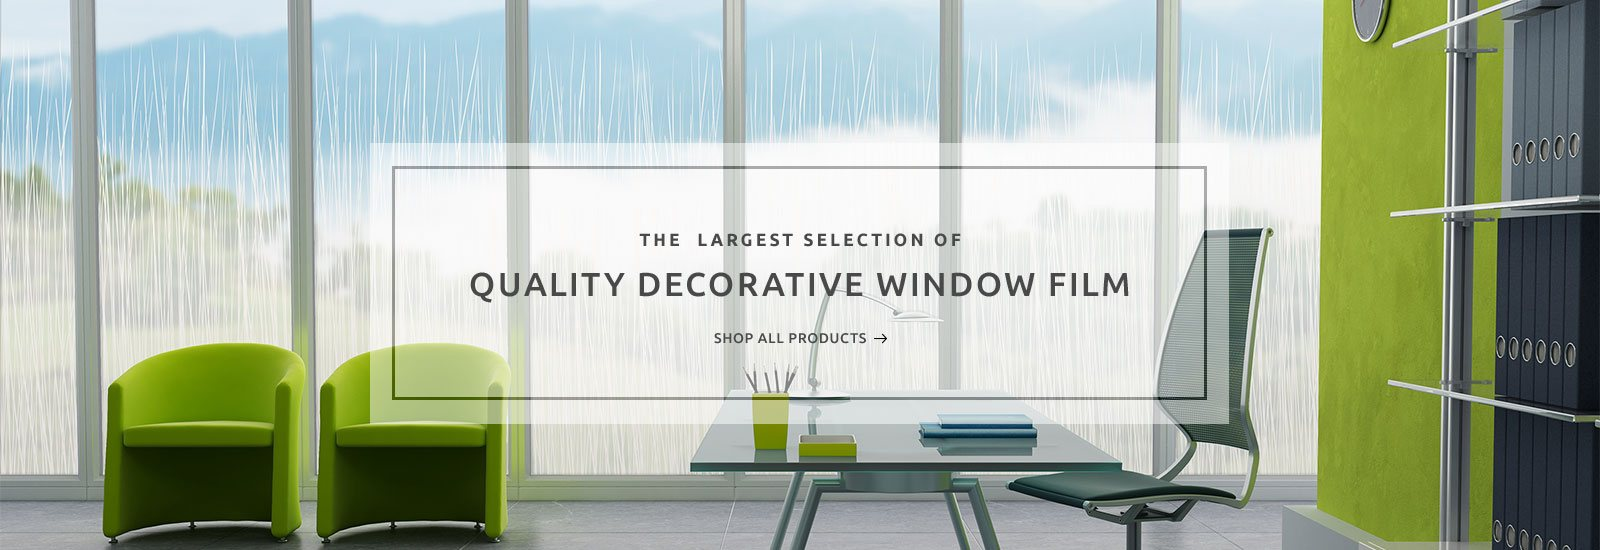 Amazing Decorative Window Film Ideas decorative-window-film